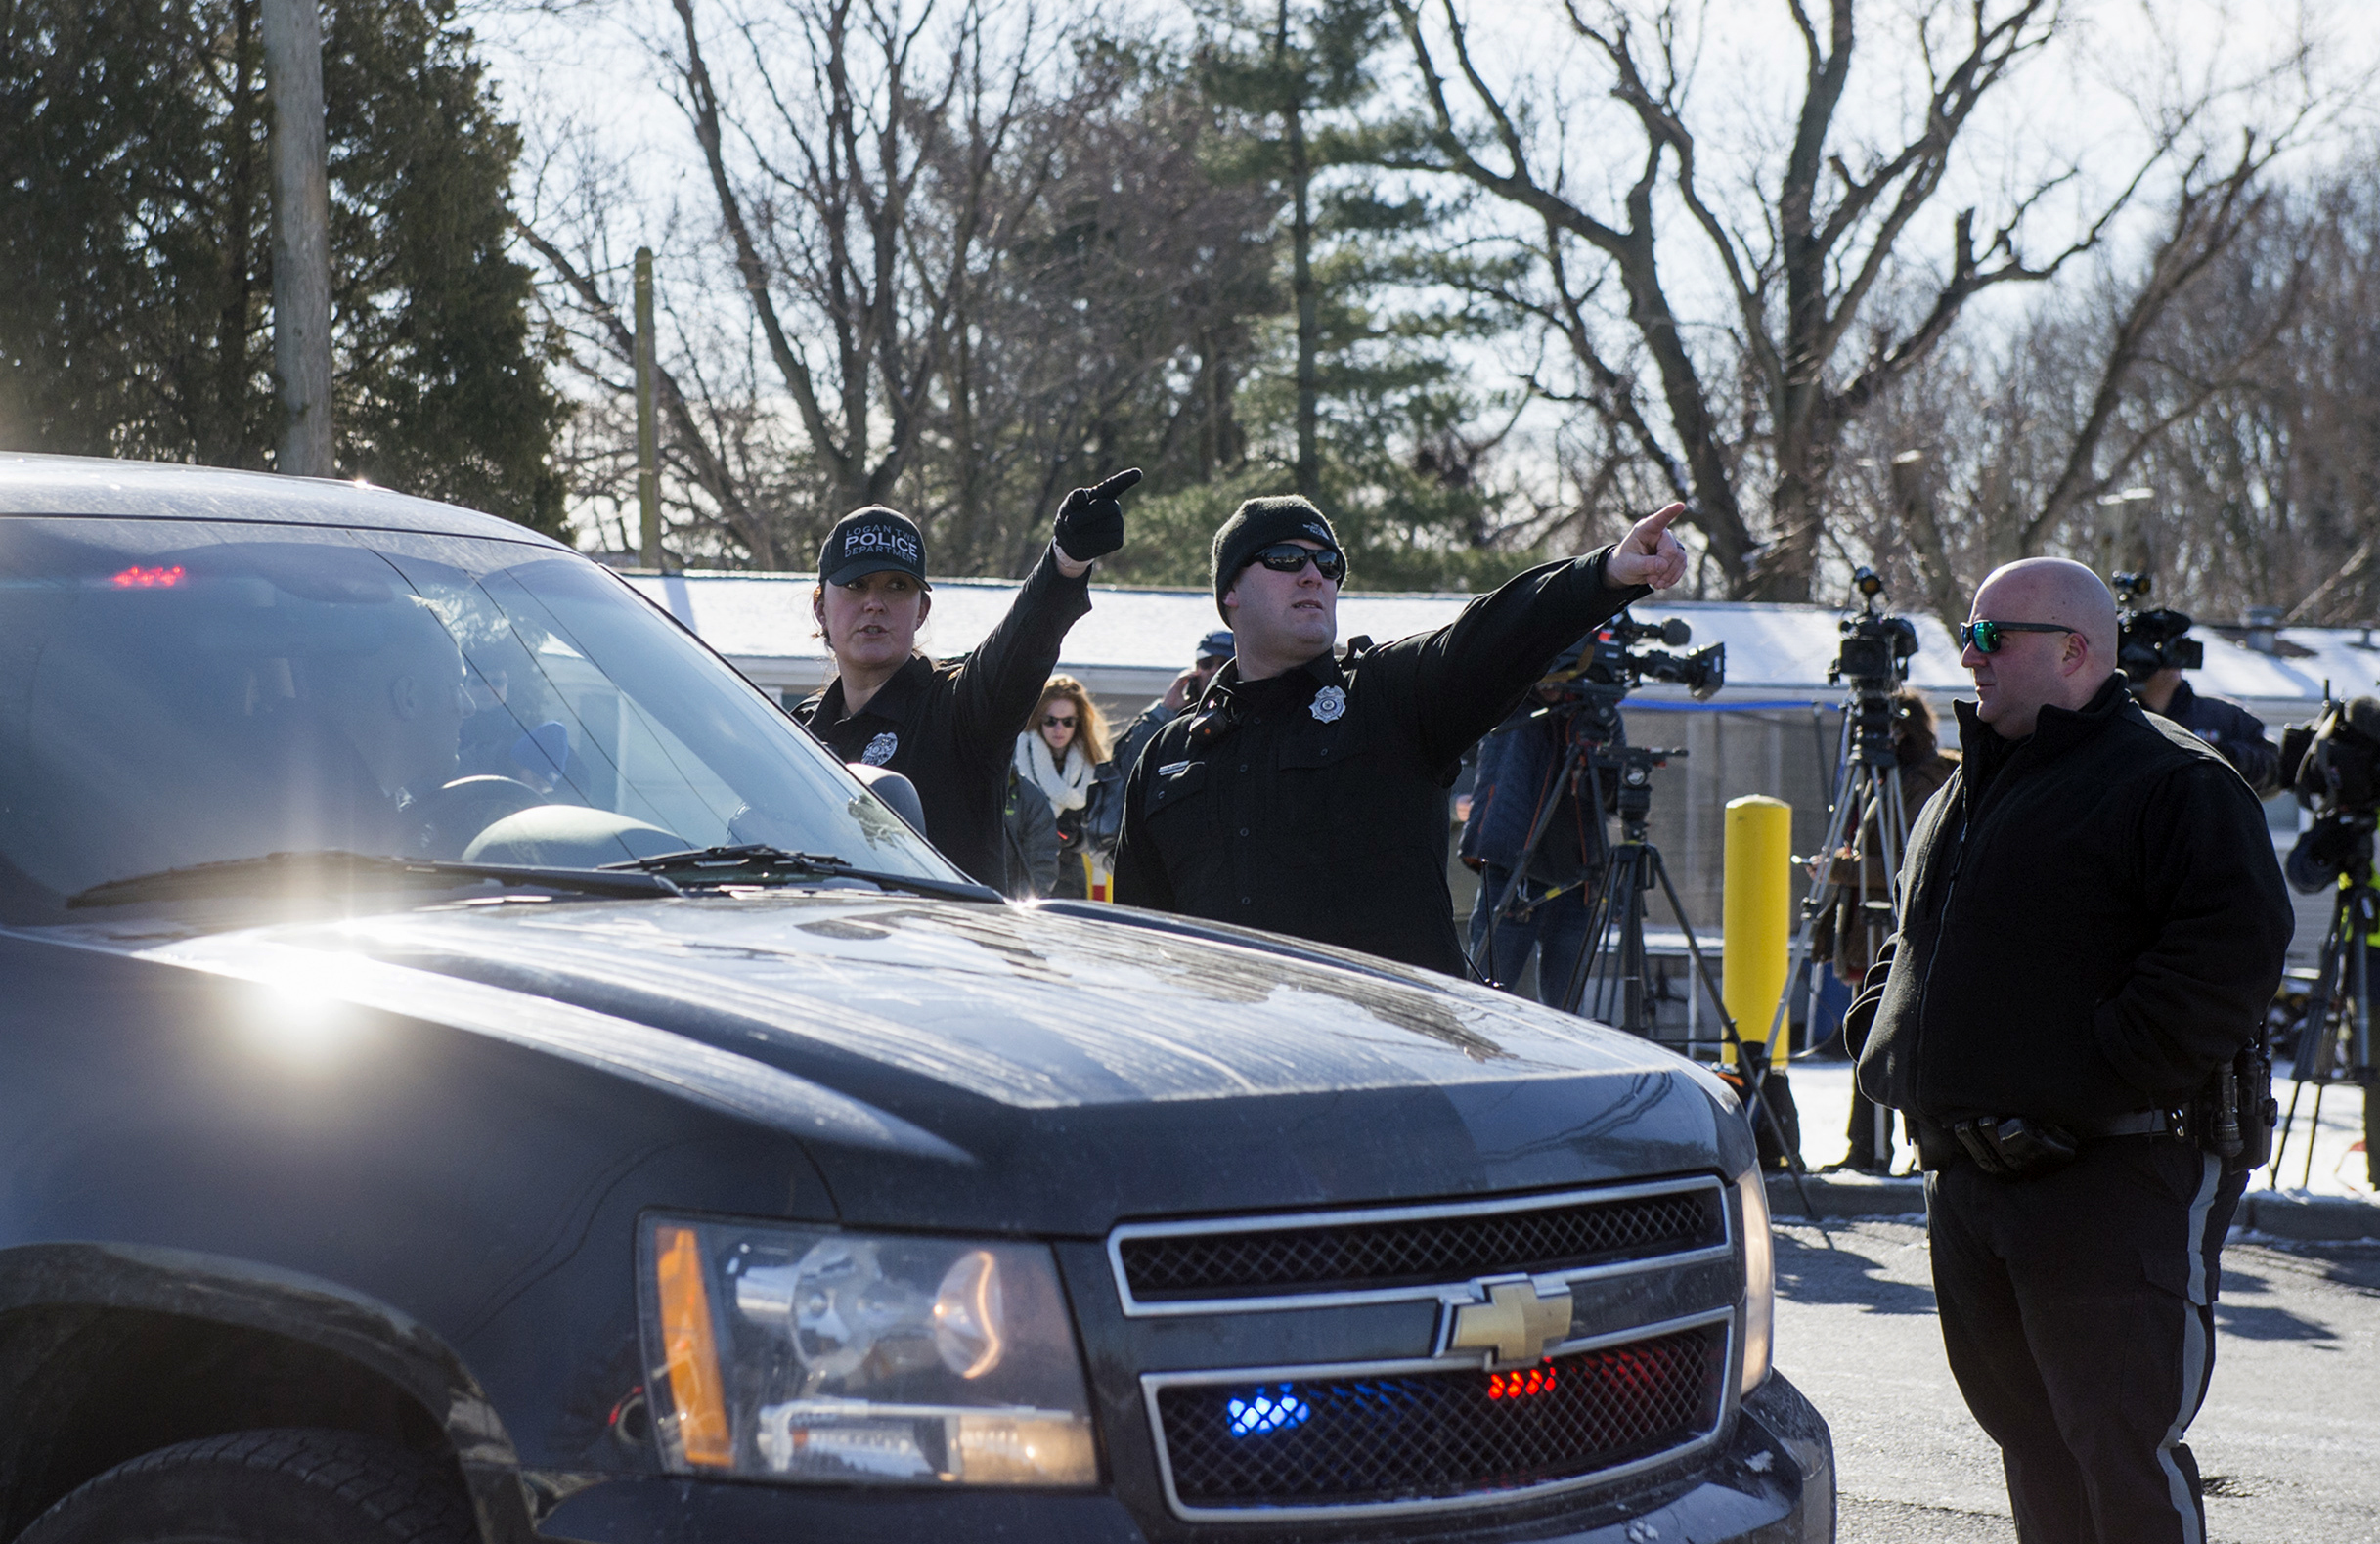 Logan Township, NJ - 2 Female Victims Unharmed After UPS Hostage